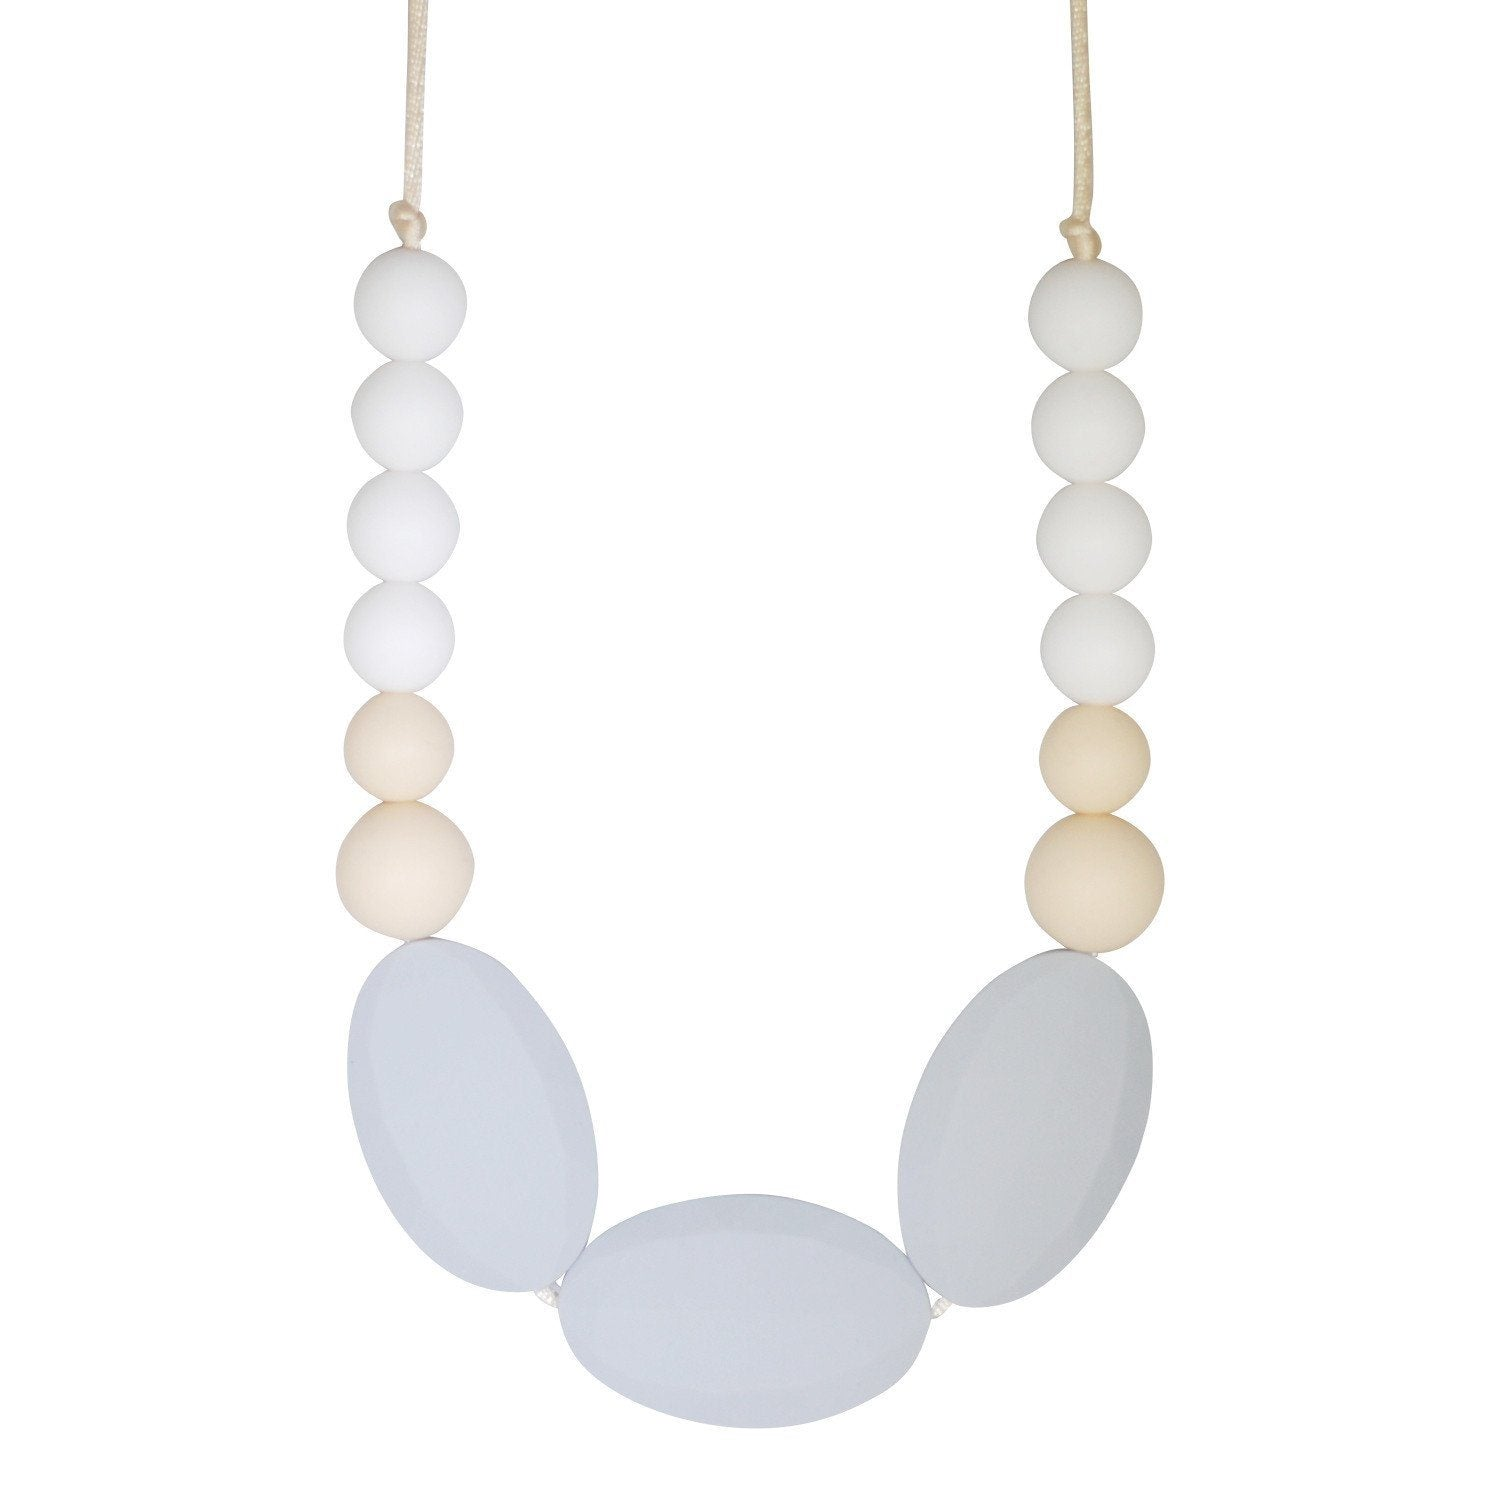 Silicone Teething Necklace - Adeline - Glitter & Spice